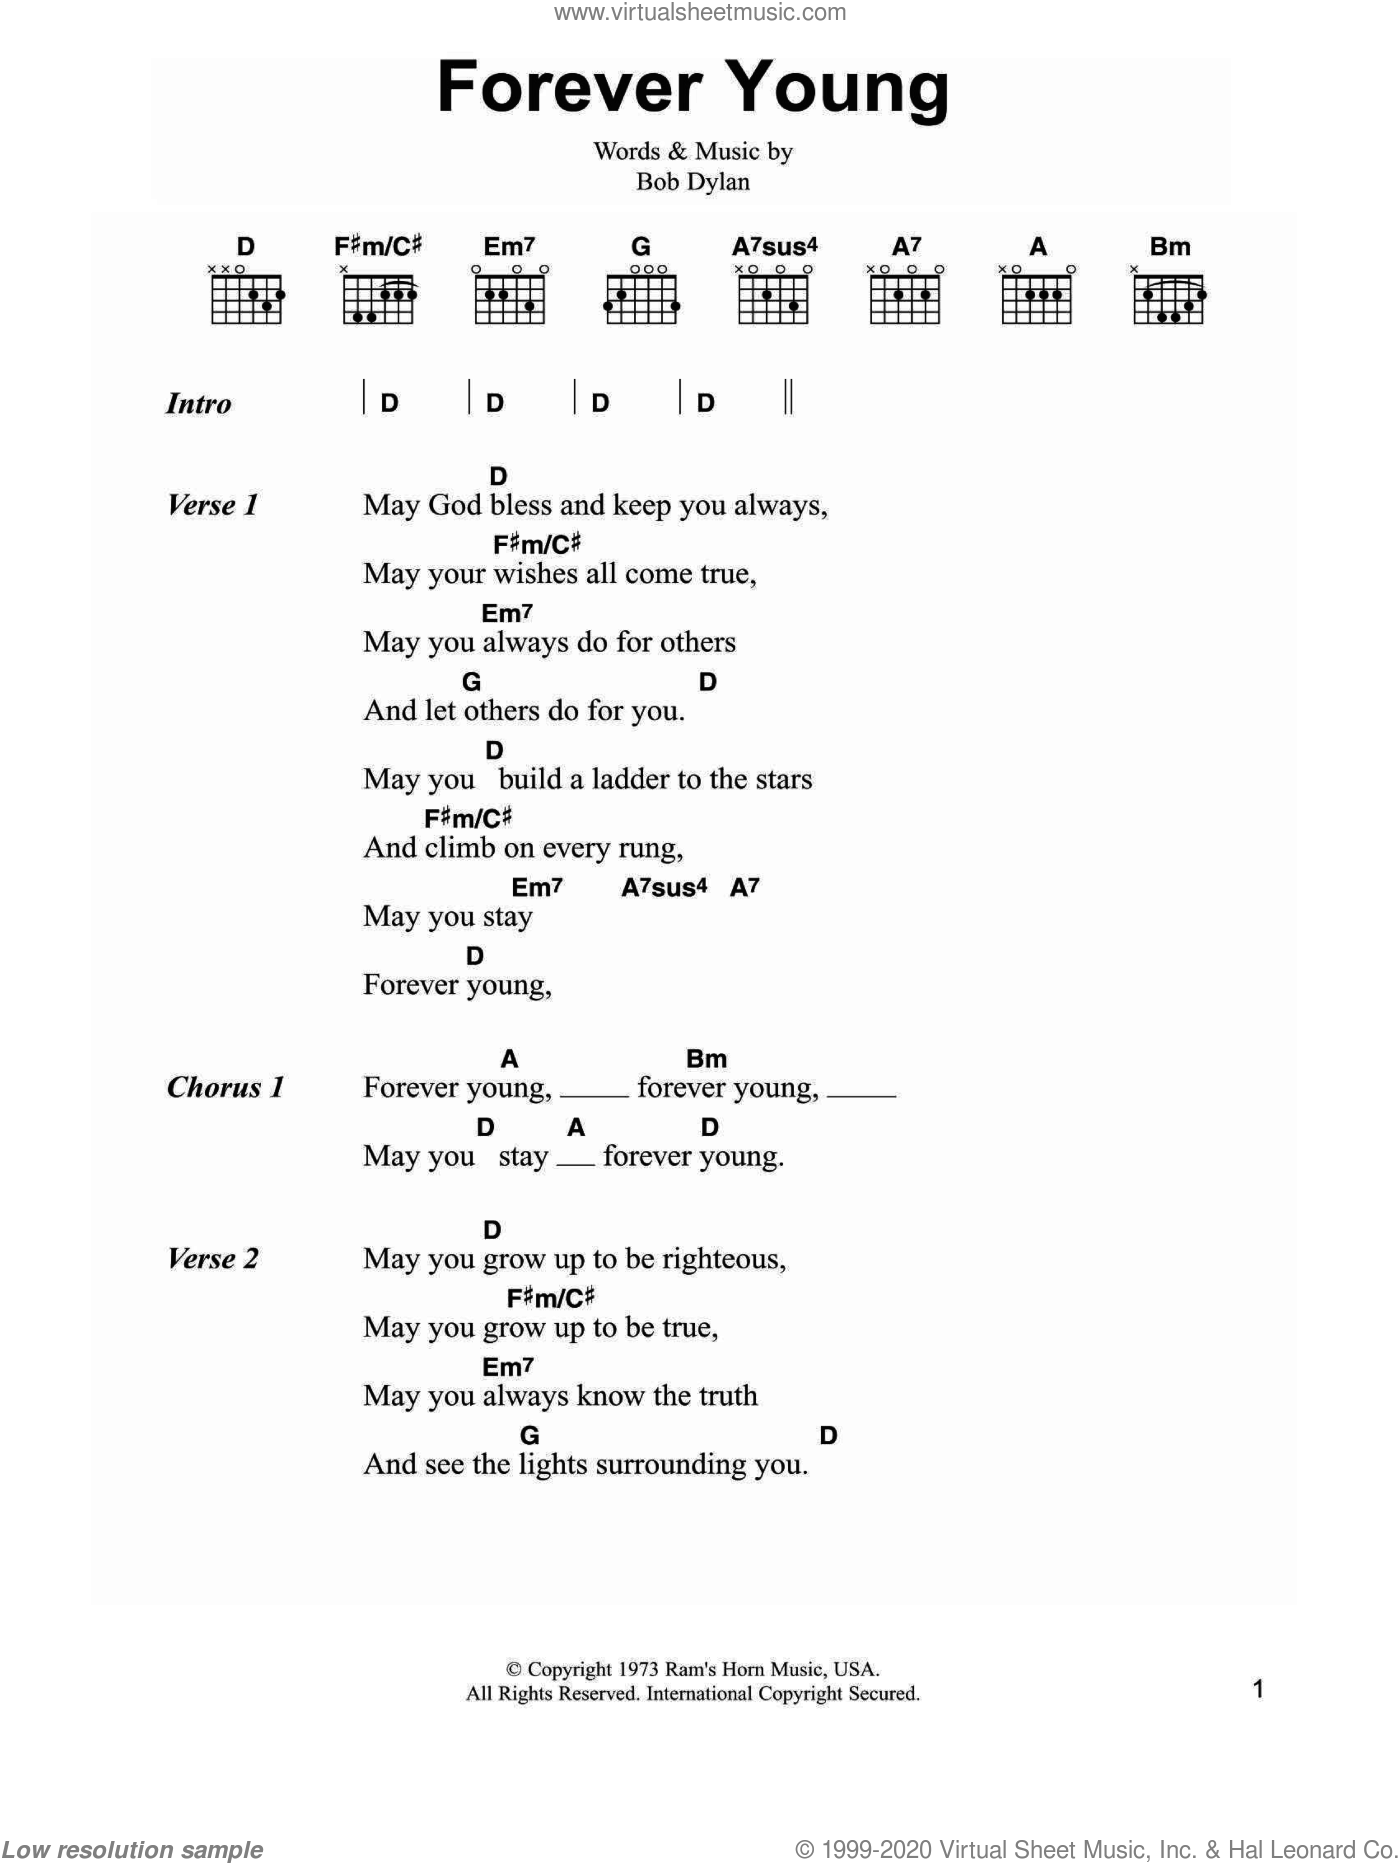 Forever Young sheet music for guitar (chords) by Bob Dylan, intermediate skill level